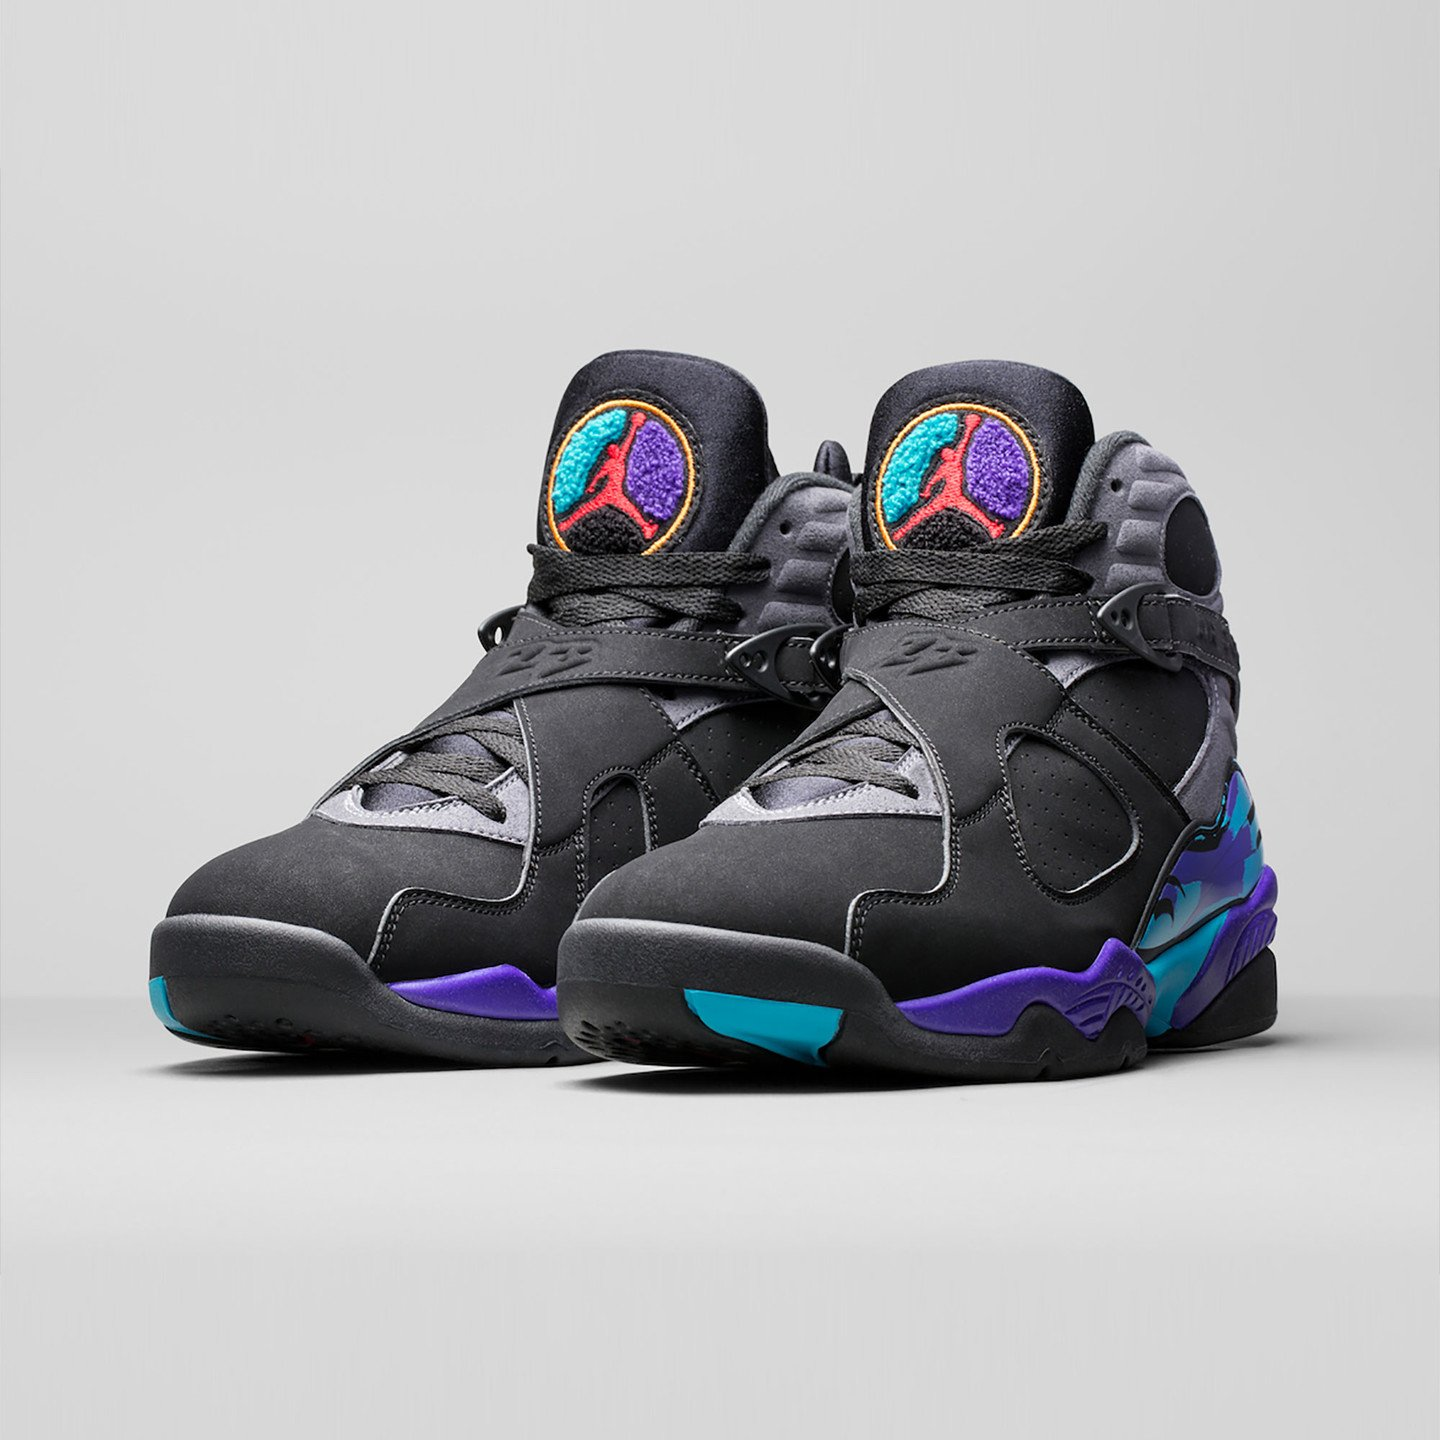 Jordan Air Jordan Retro 8 'Aqua' Black/True Red-Flint Grey-Bright Concord 305381-025-45